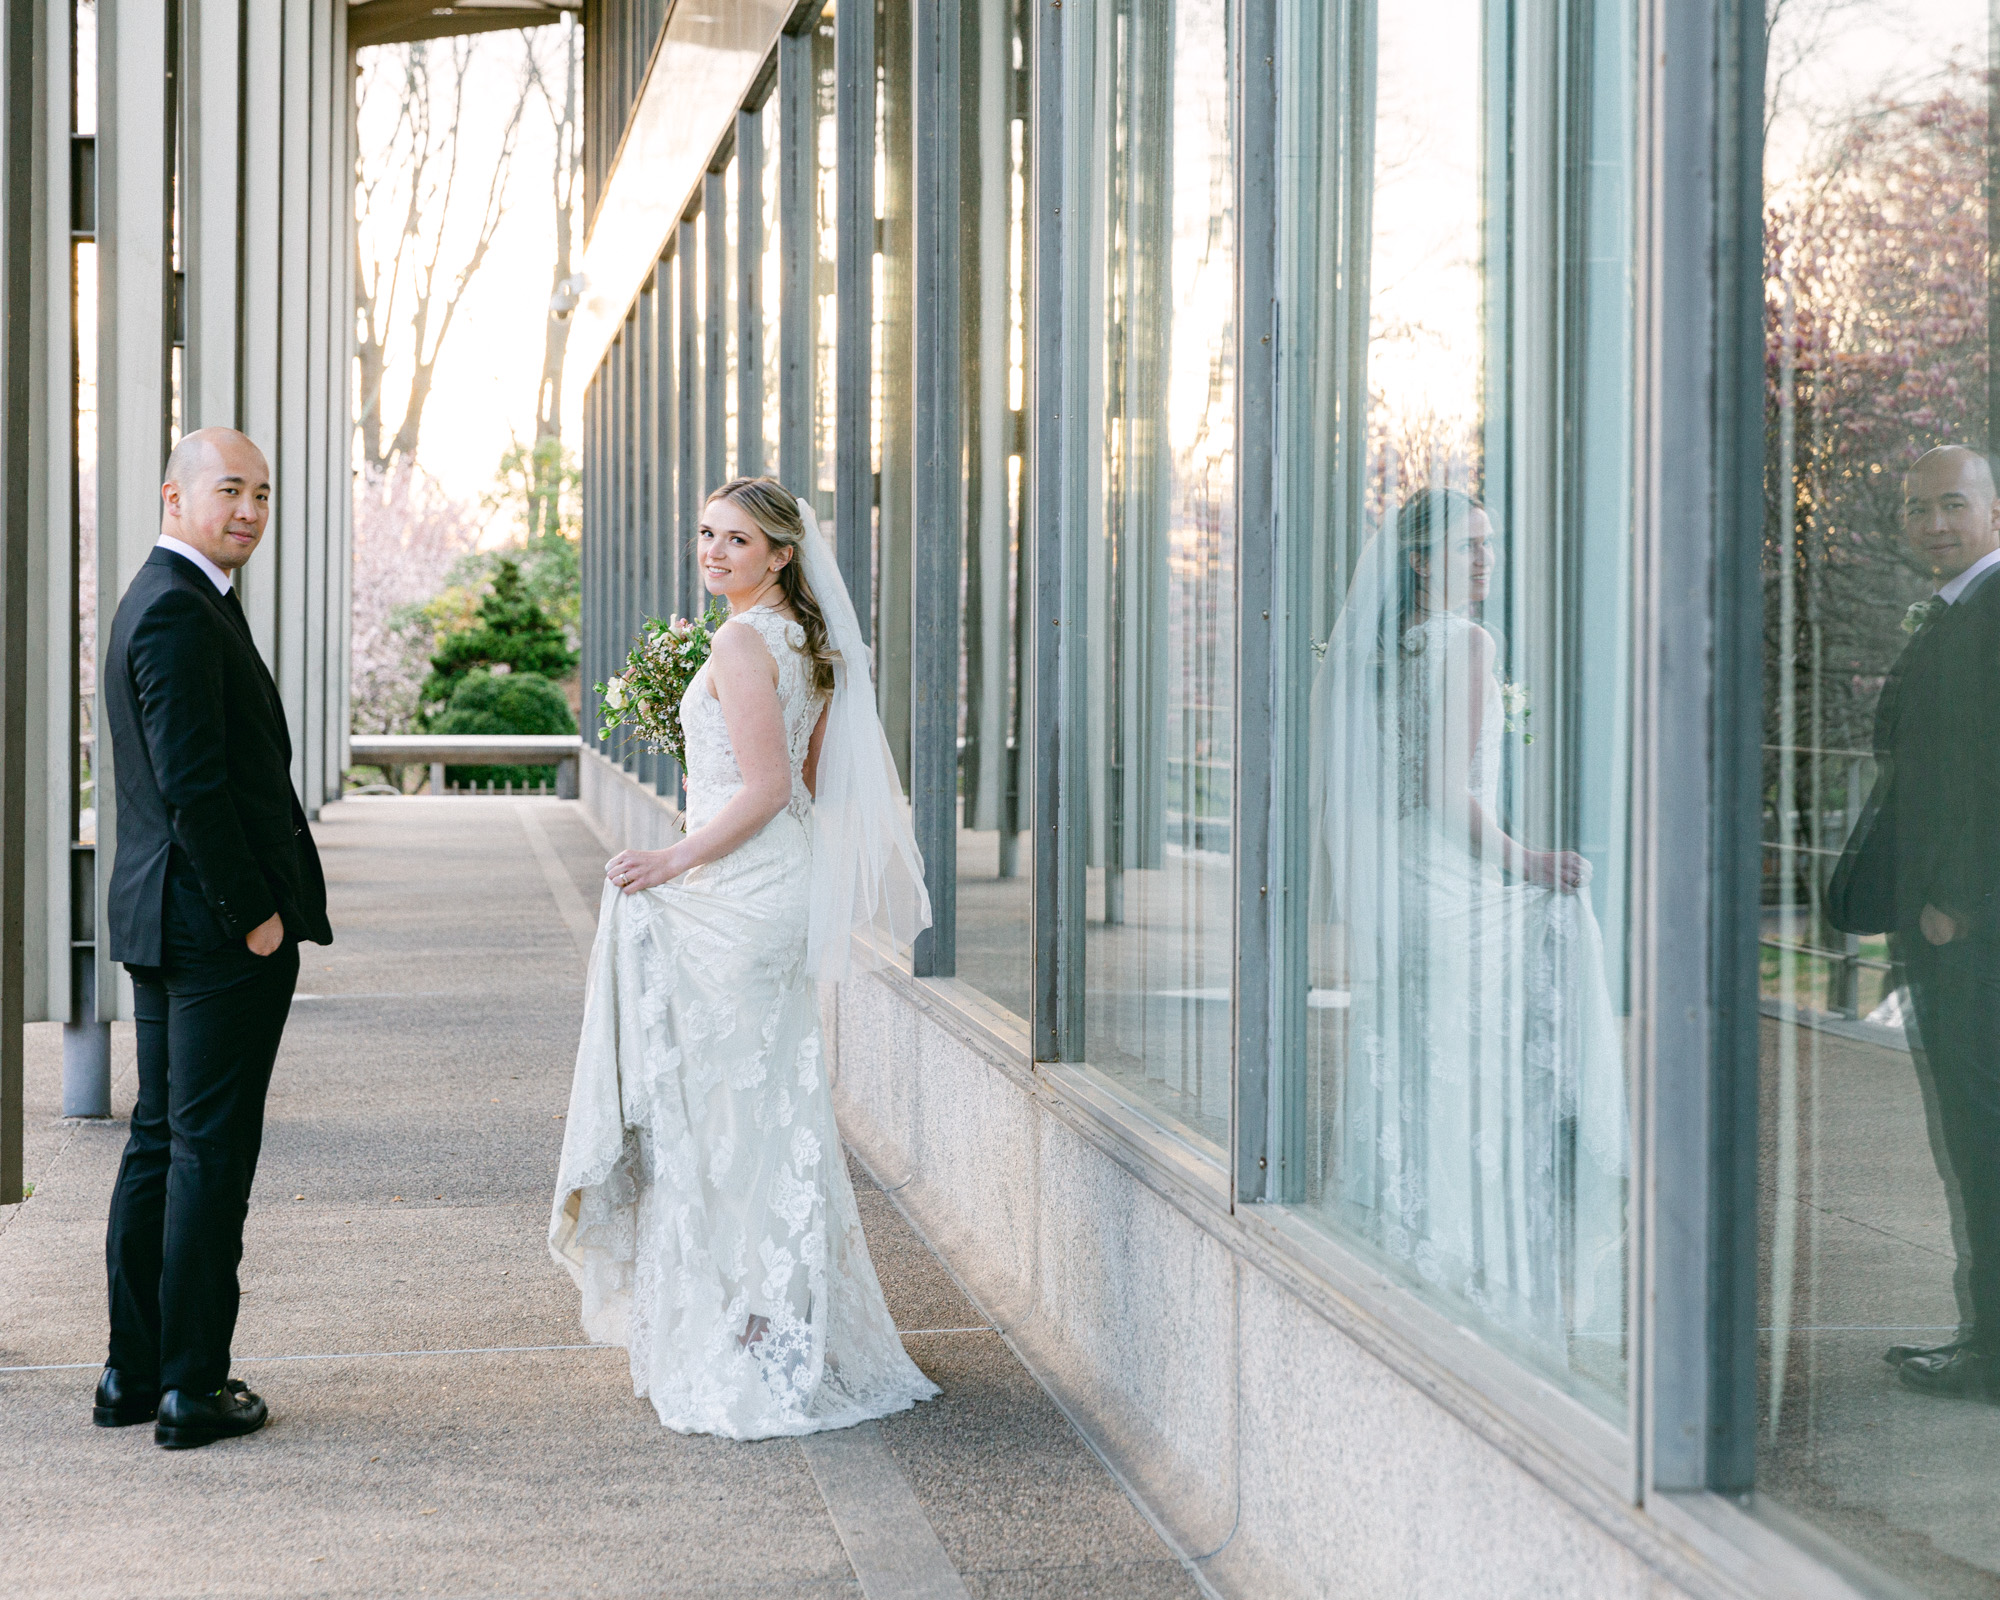 Elegant bride and groom look back over the shoulders at sunset at the Bethlehem Area Public Library in Bethlehem, PA by Laura Billingham Photography